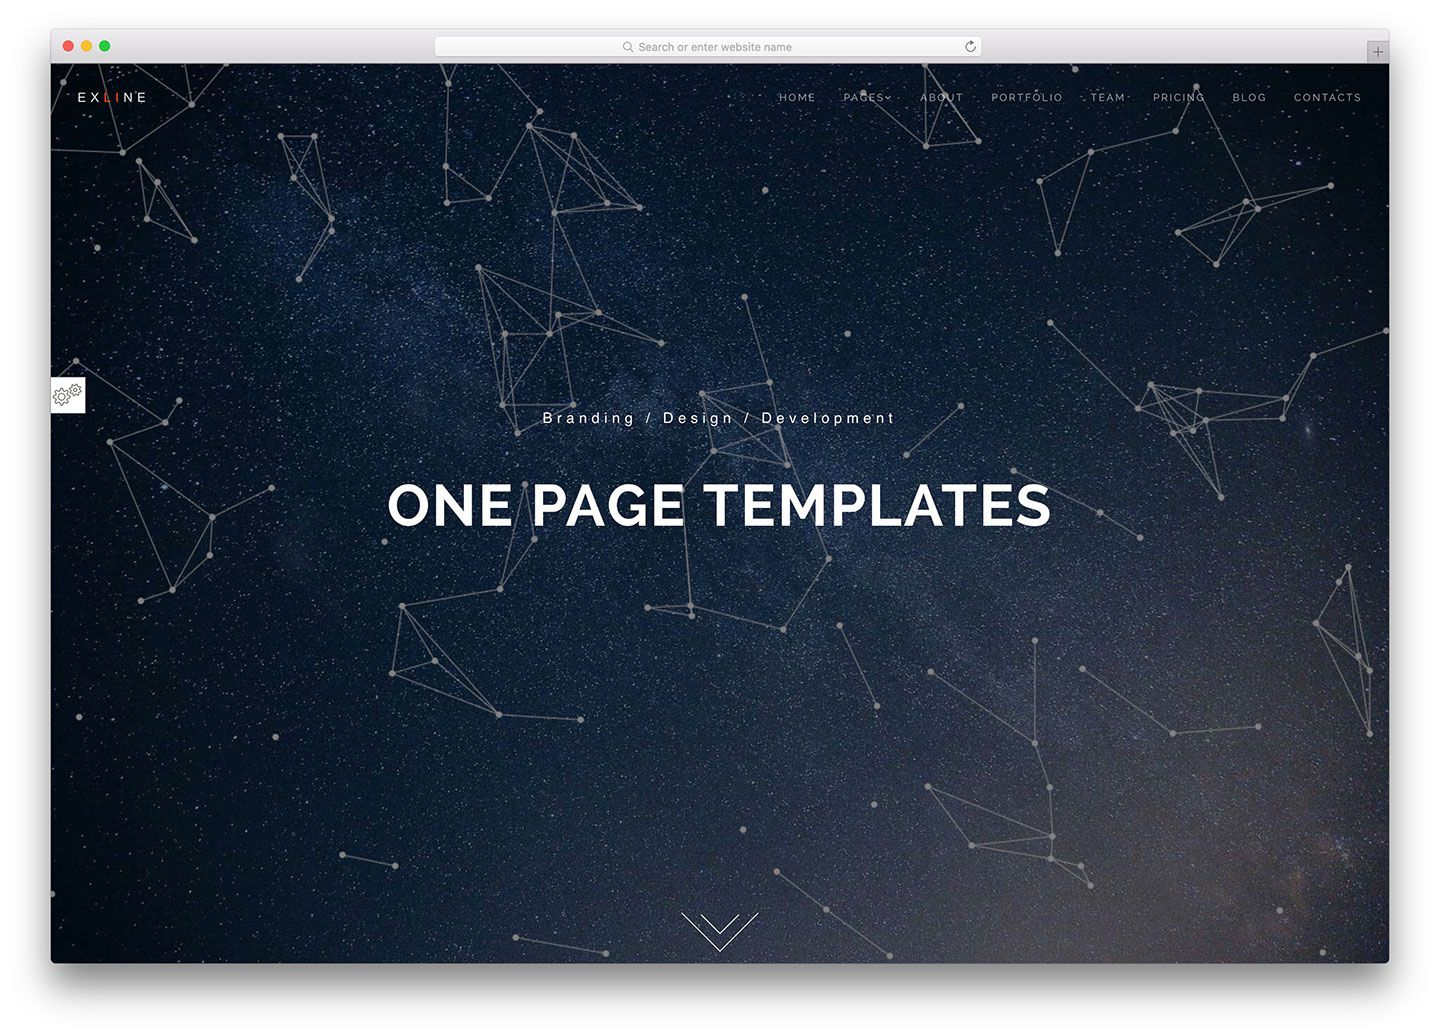 005 Incredible Simple One Page Website Template Free Download High Definition  Html With CsFull